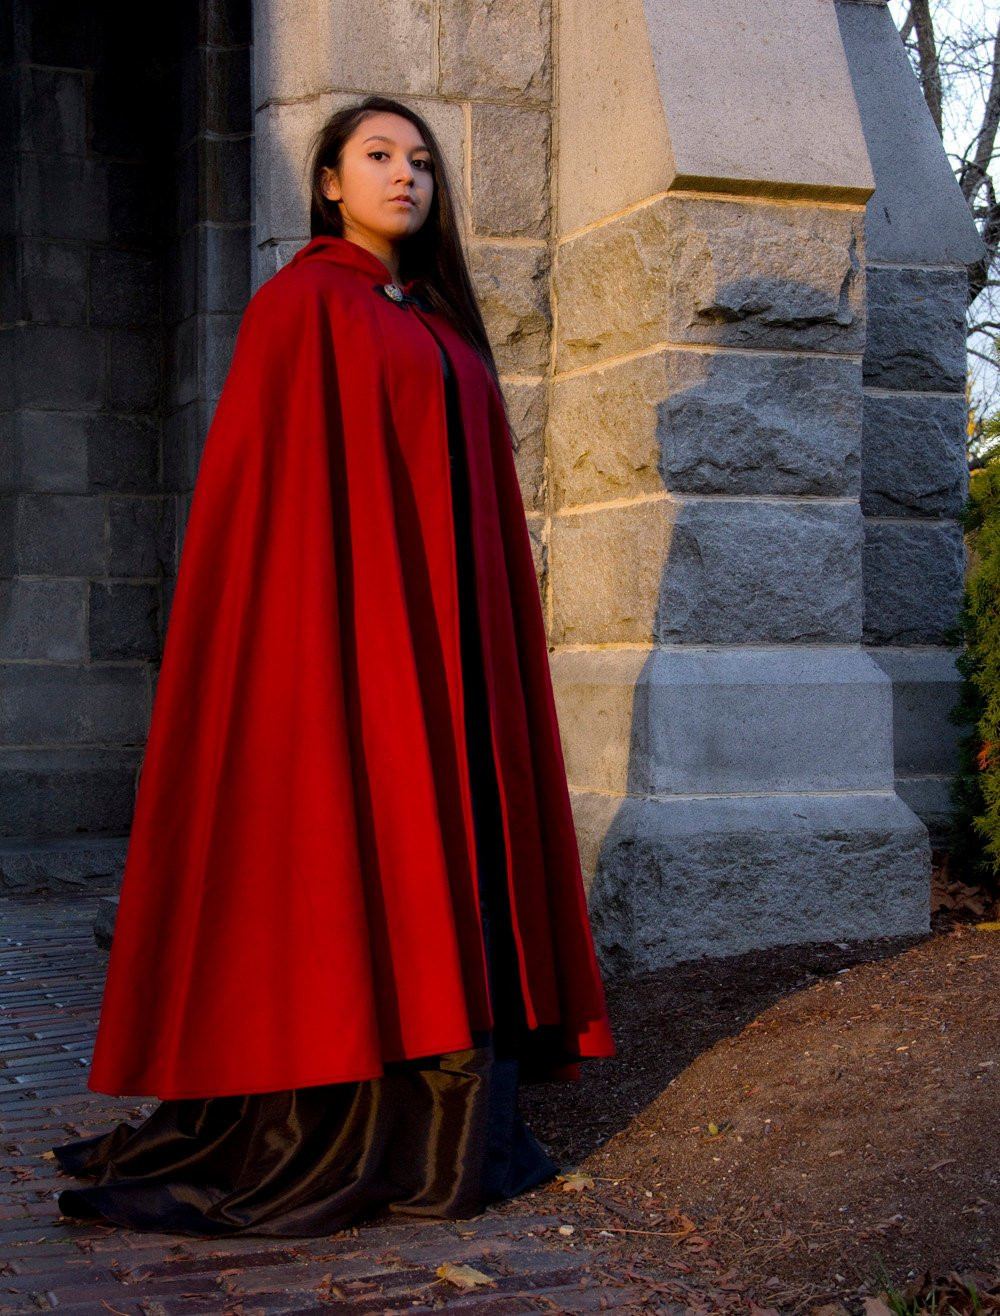 Red Cloak Half Circle Cloak Wool Cloak Hooded Cloak